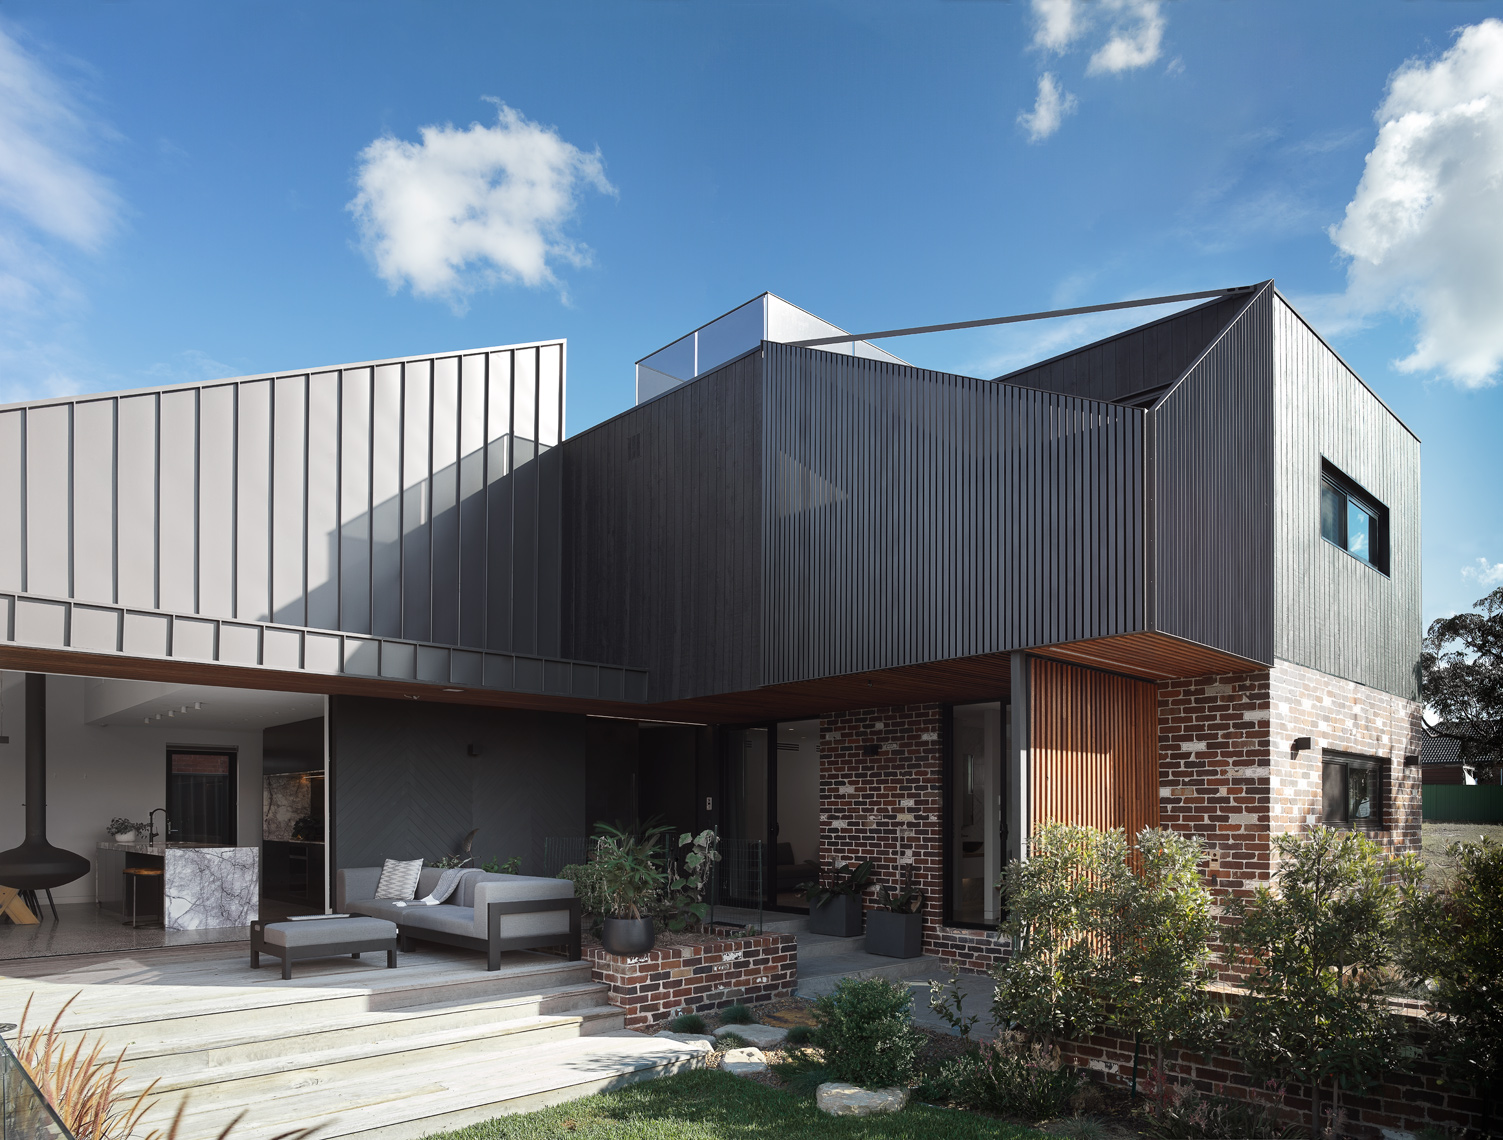 luke-butterly-2019-Jacobson-House-by-Anderson-Architecture-Sydney-NSW-13